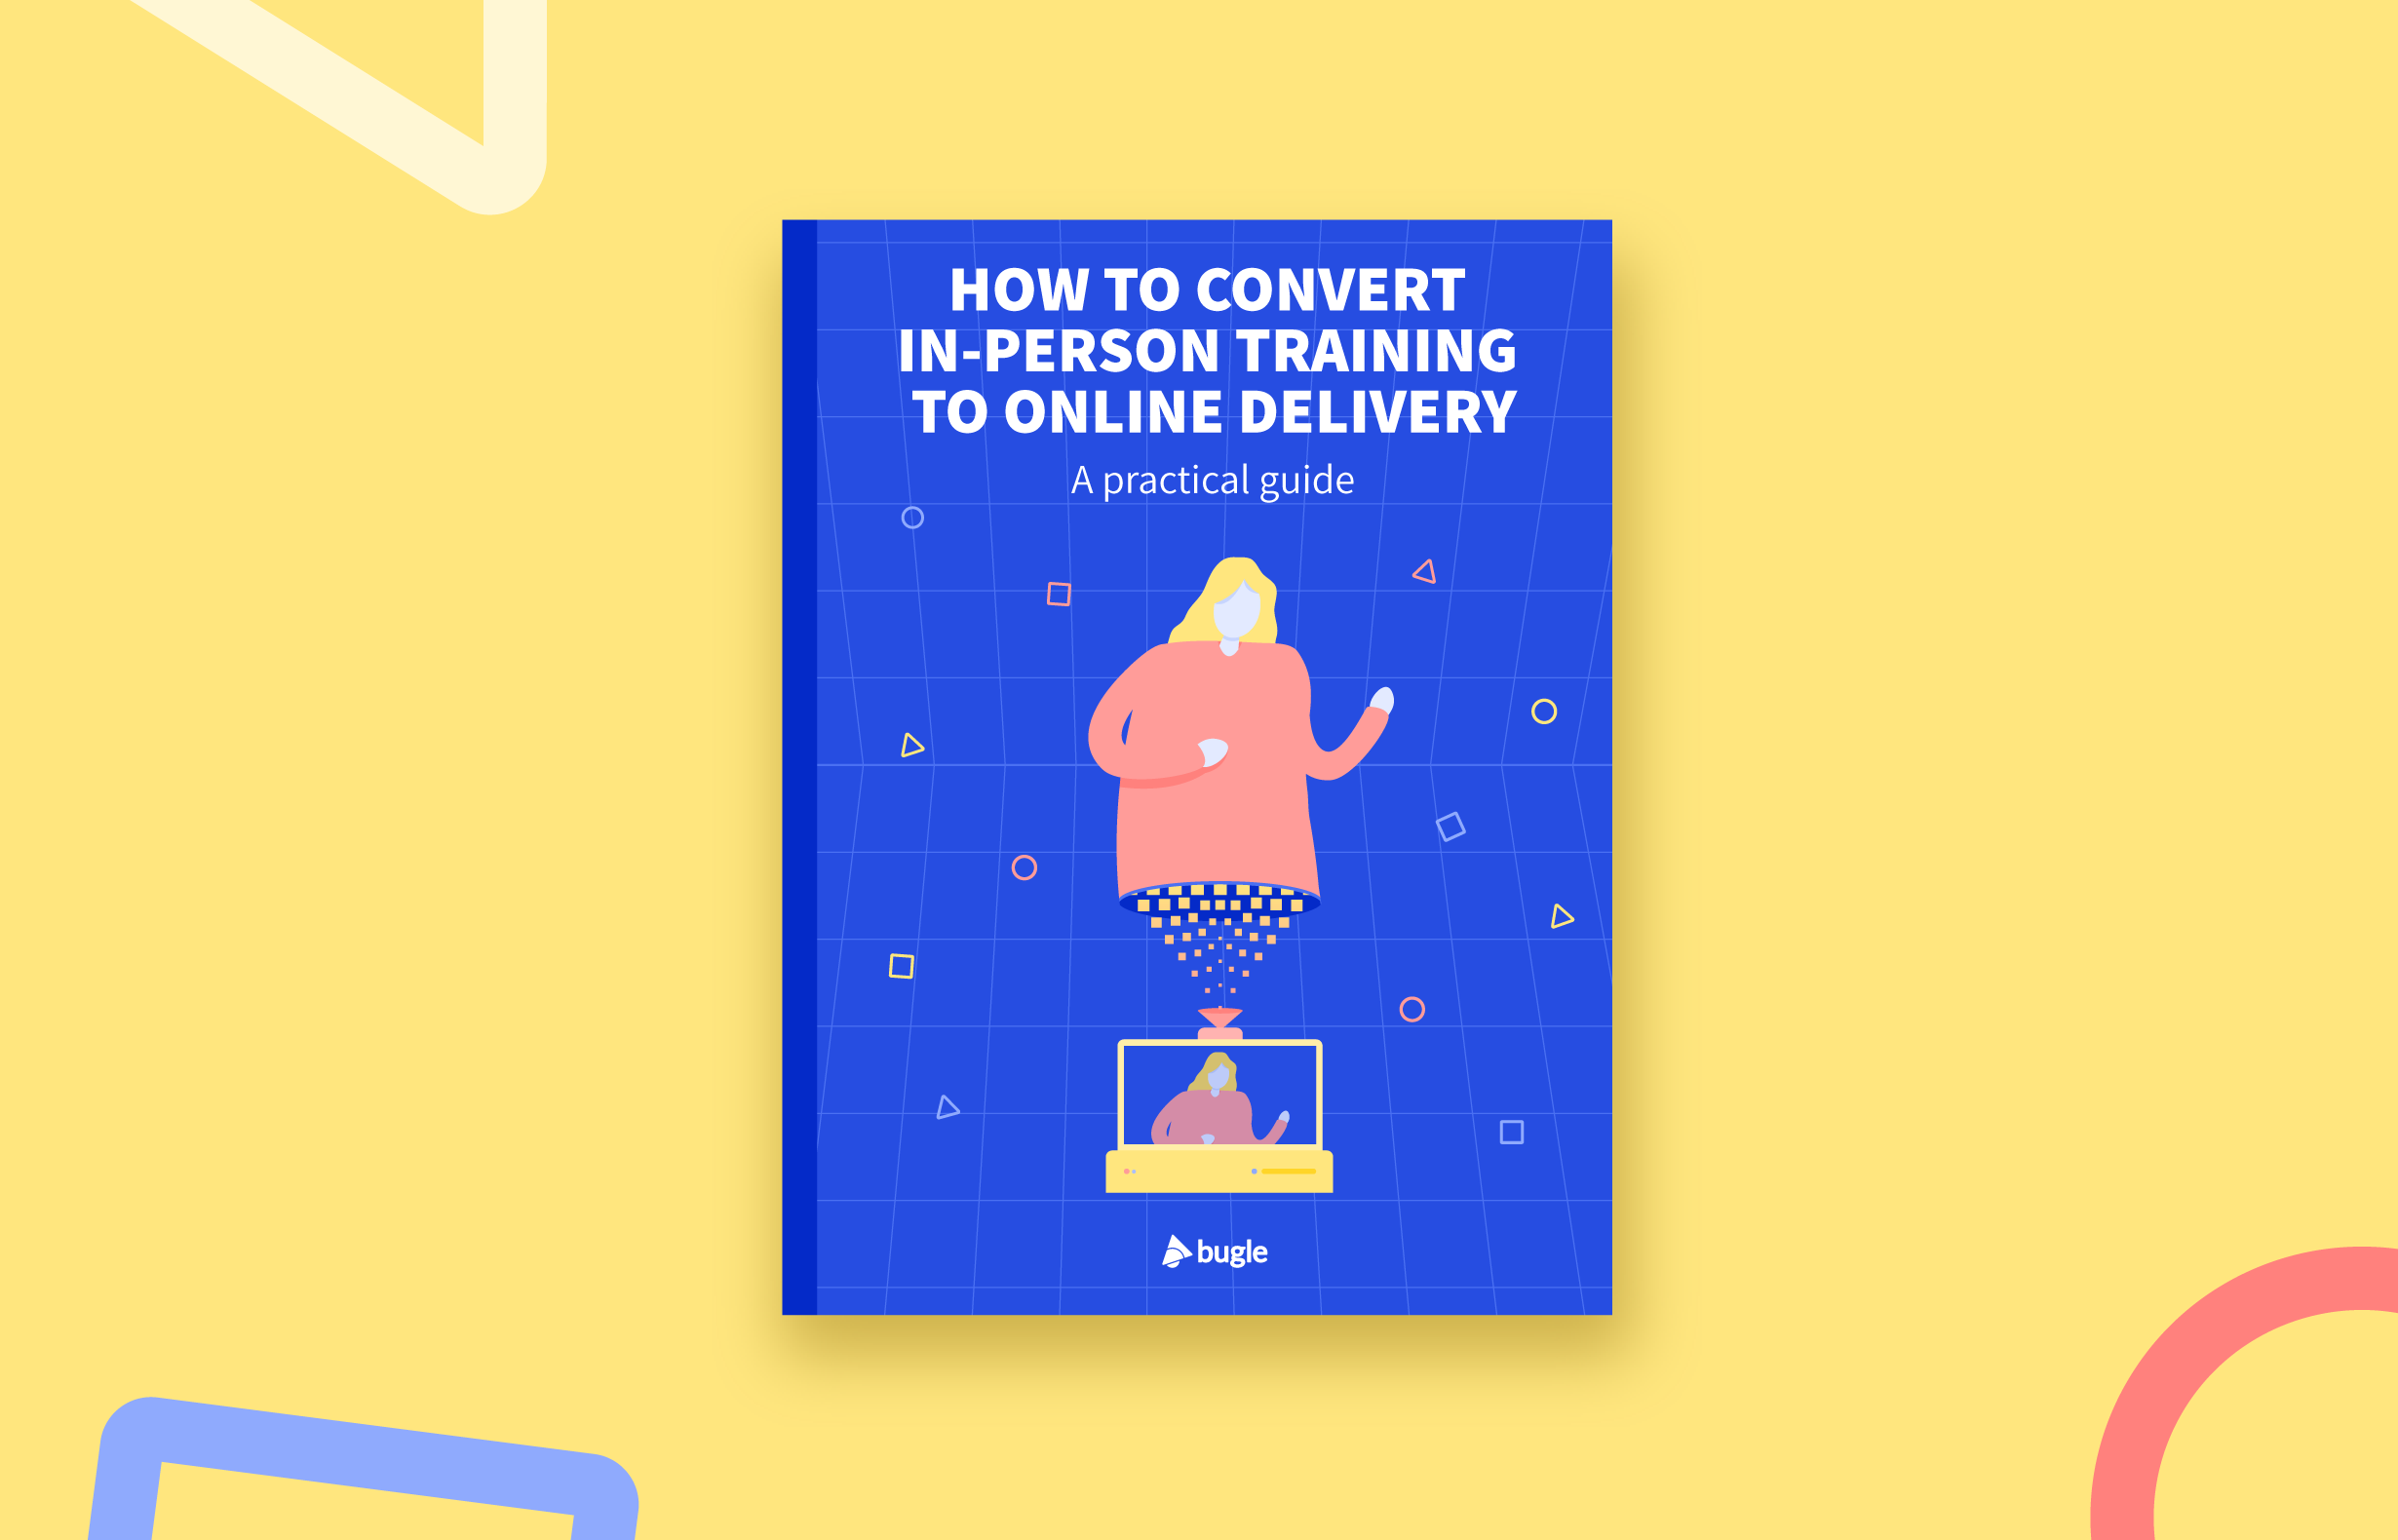 How to convert in-person training to online delivery